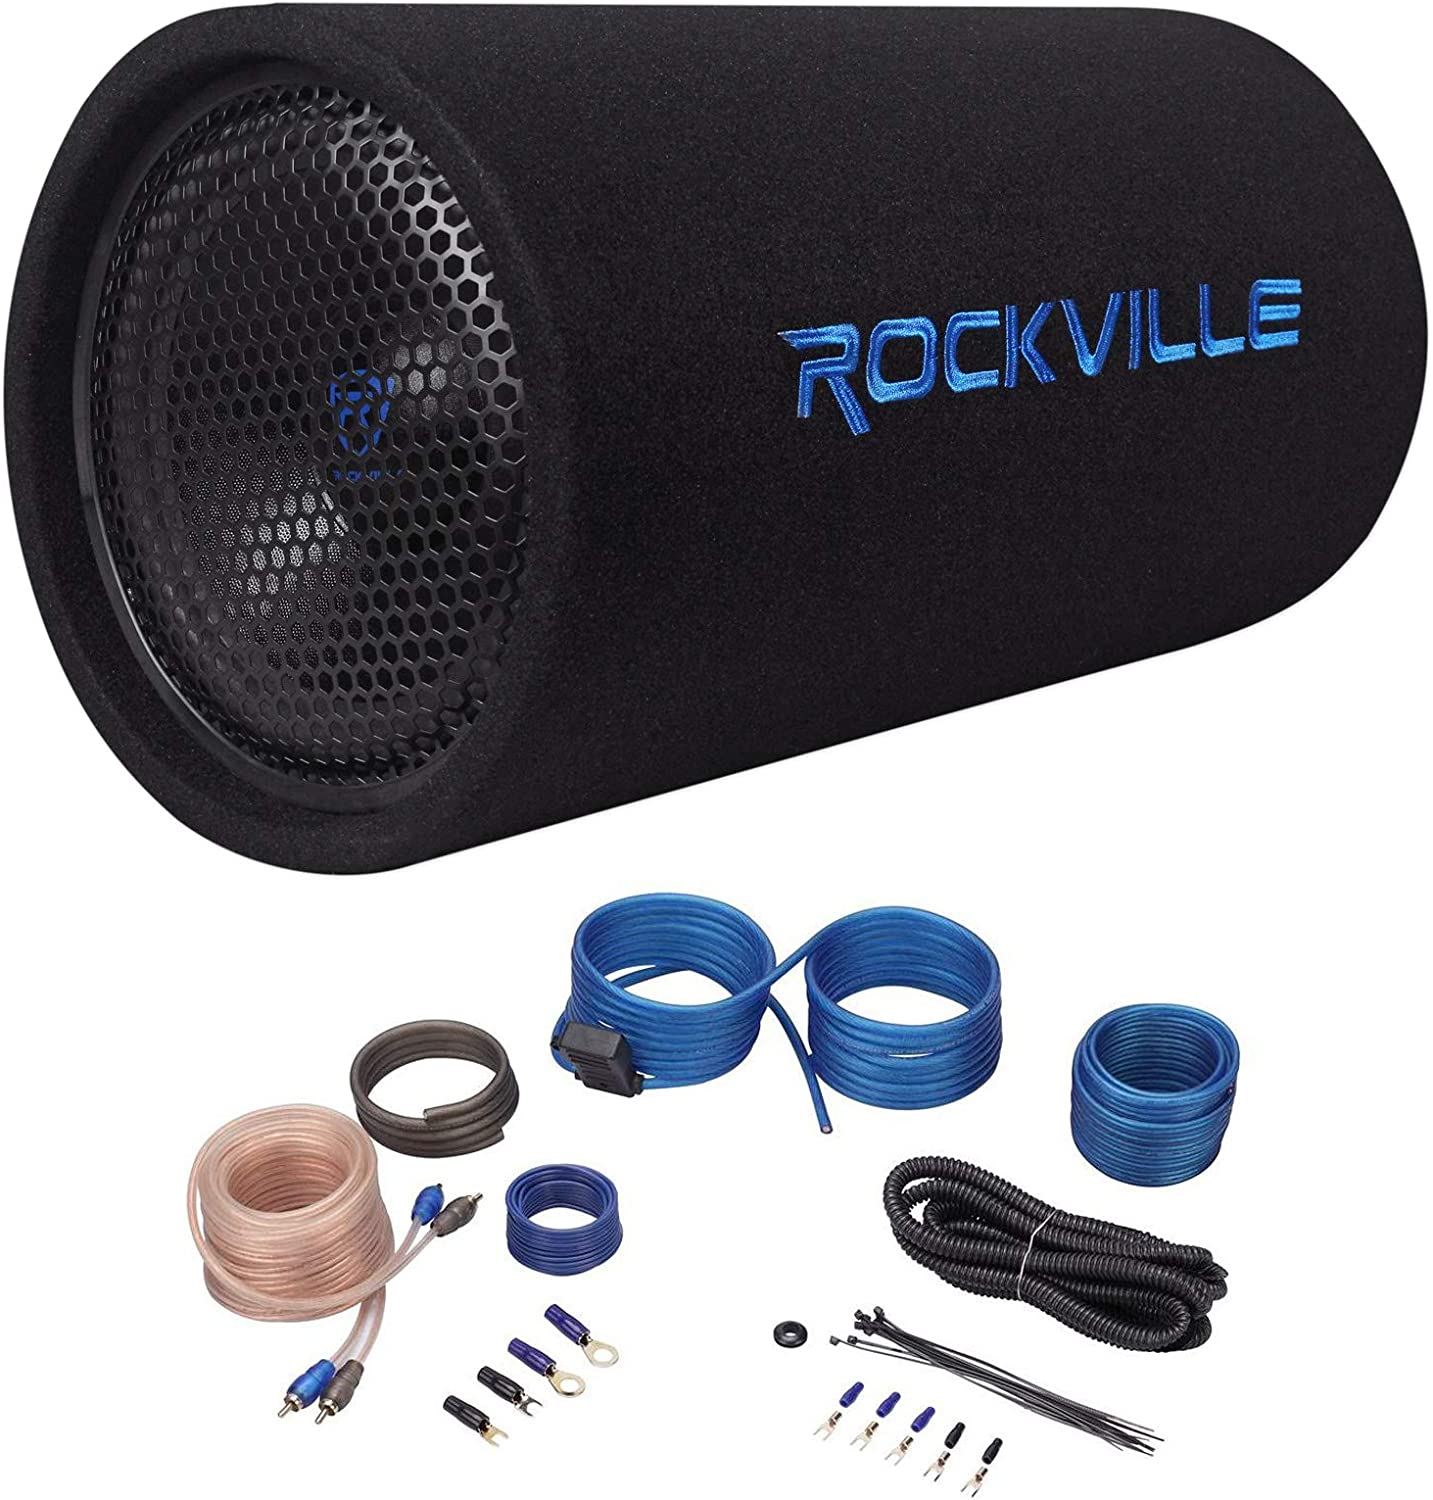 Rockville 10 500W Powered Subwoofer Bass Remote 10 inch RTB10A Audiosavings